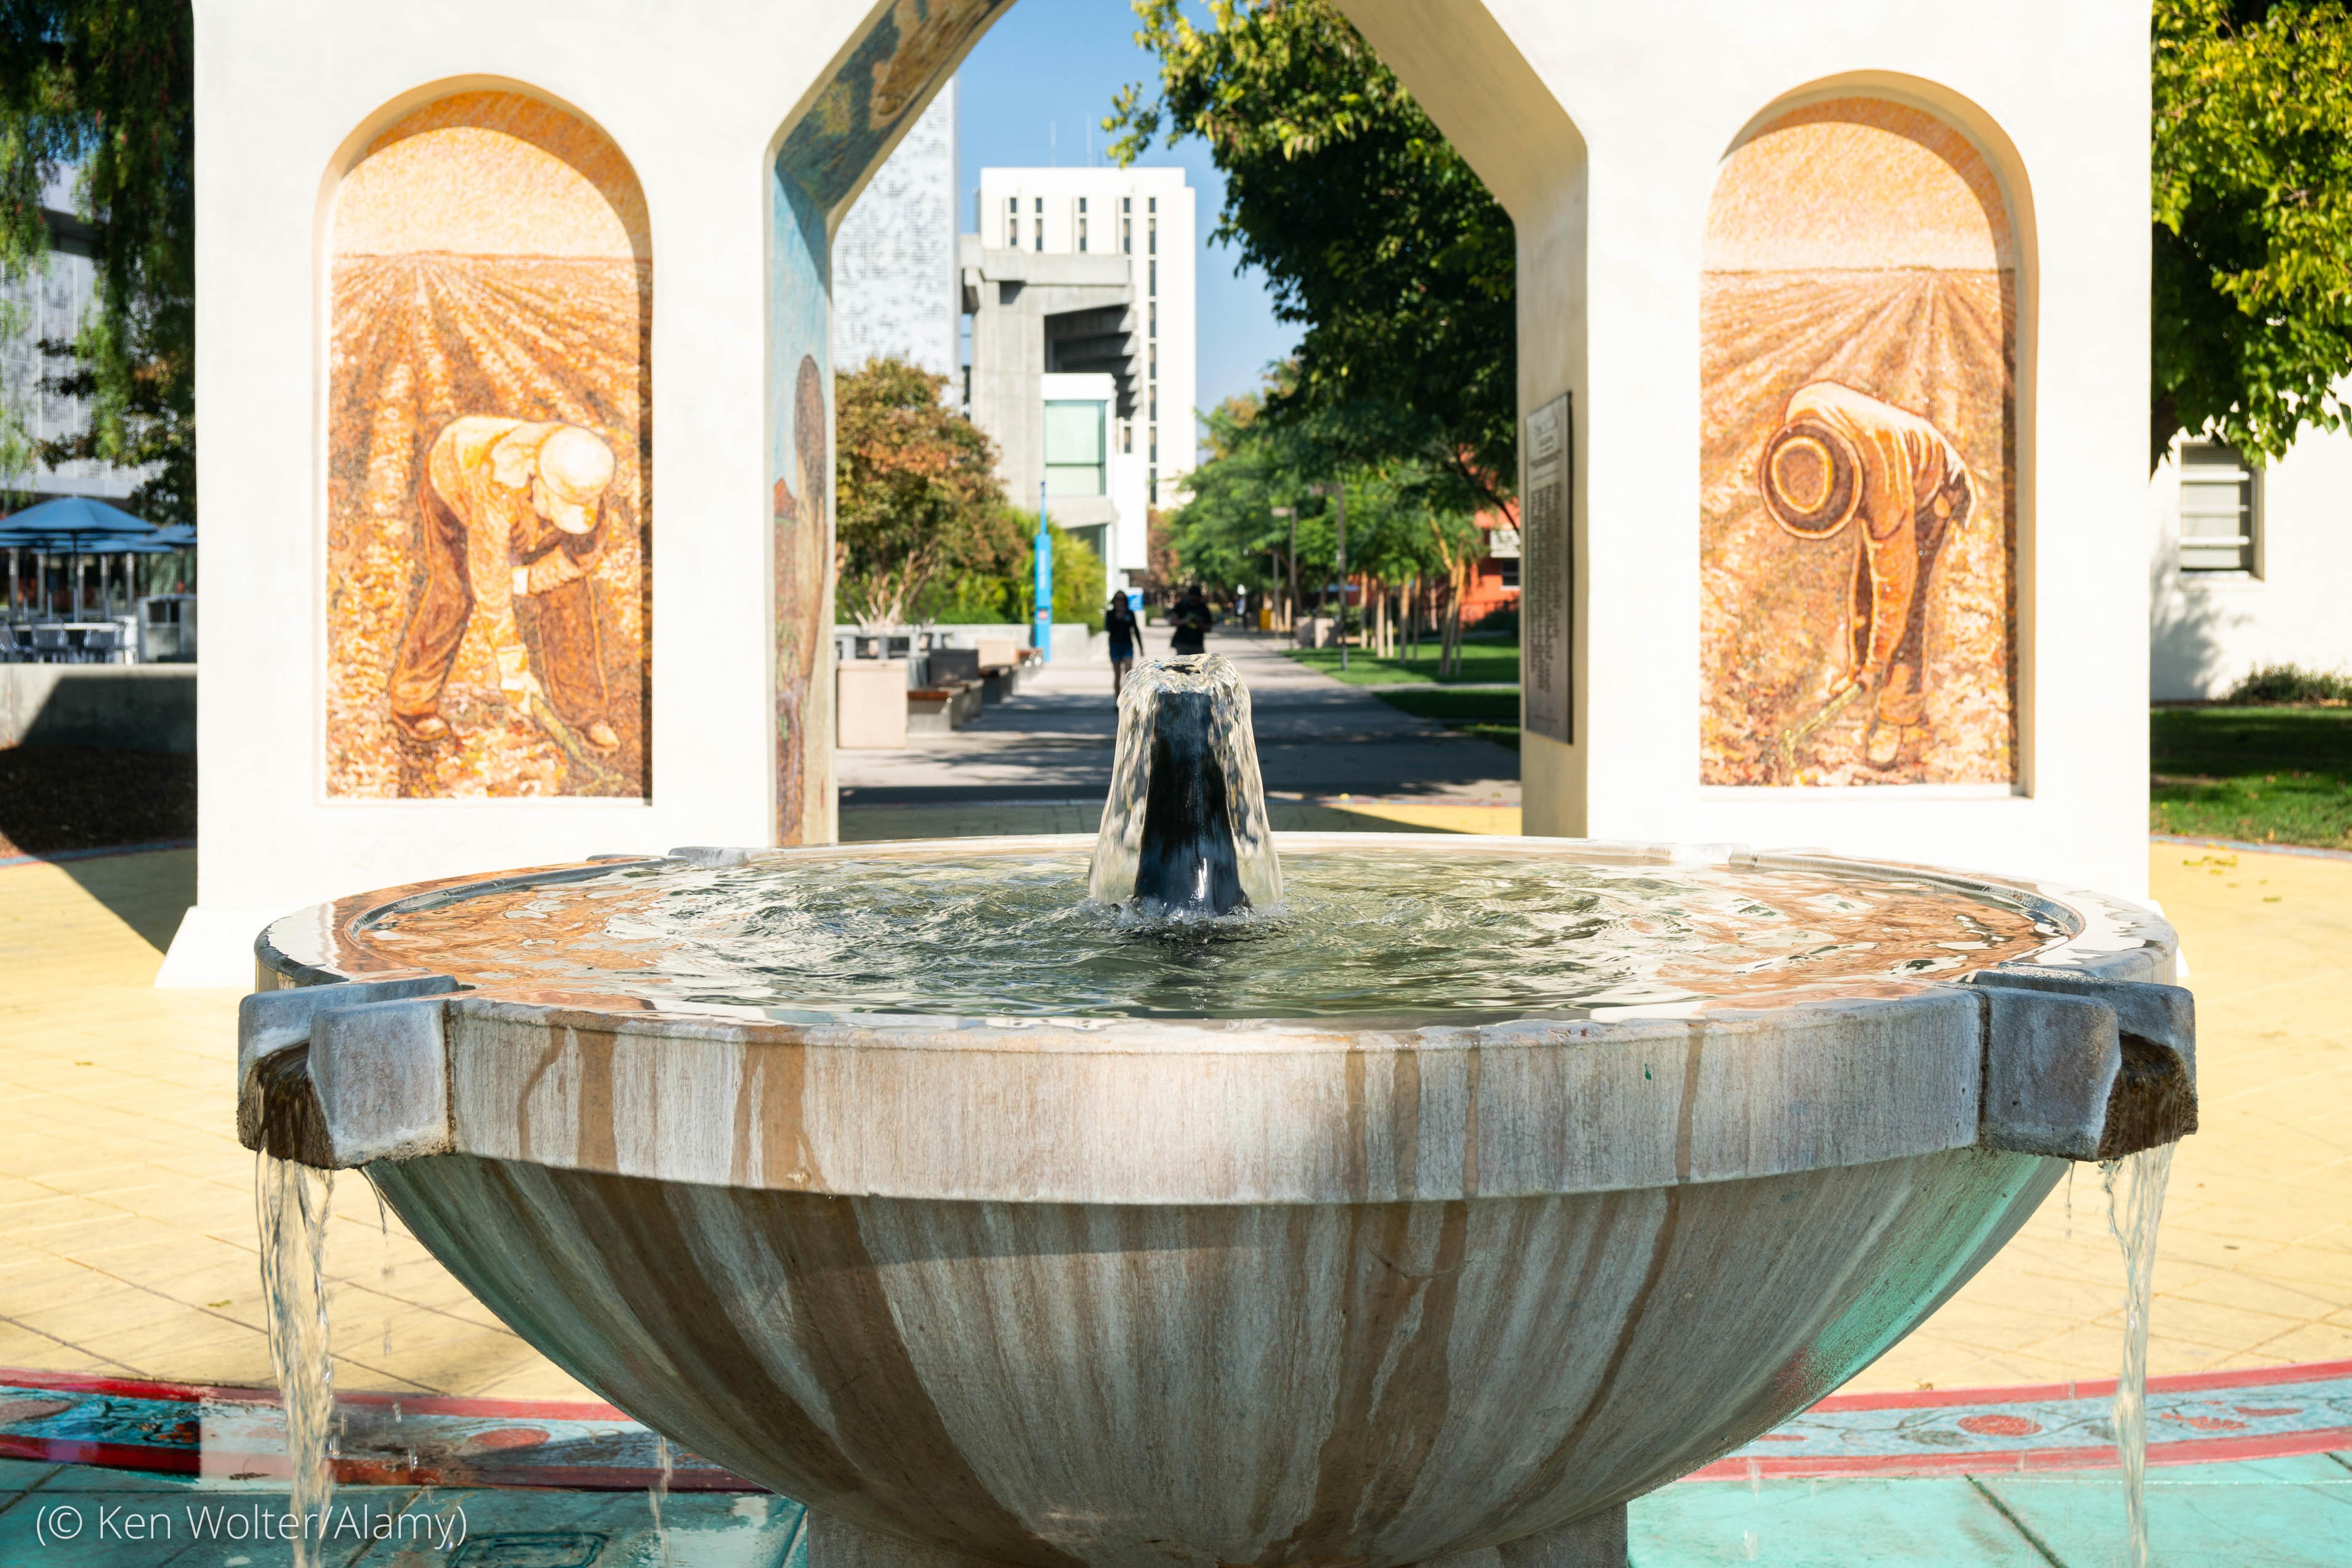 Fountain in front of arched monument (© Ken Wolter/Alamy)